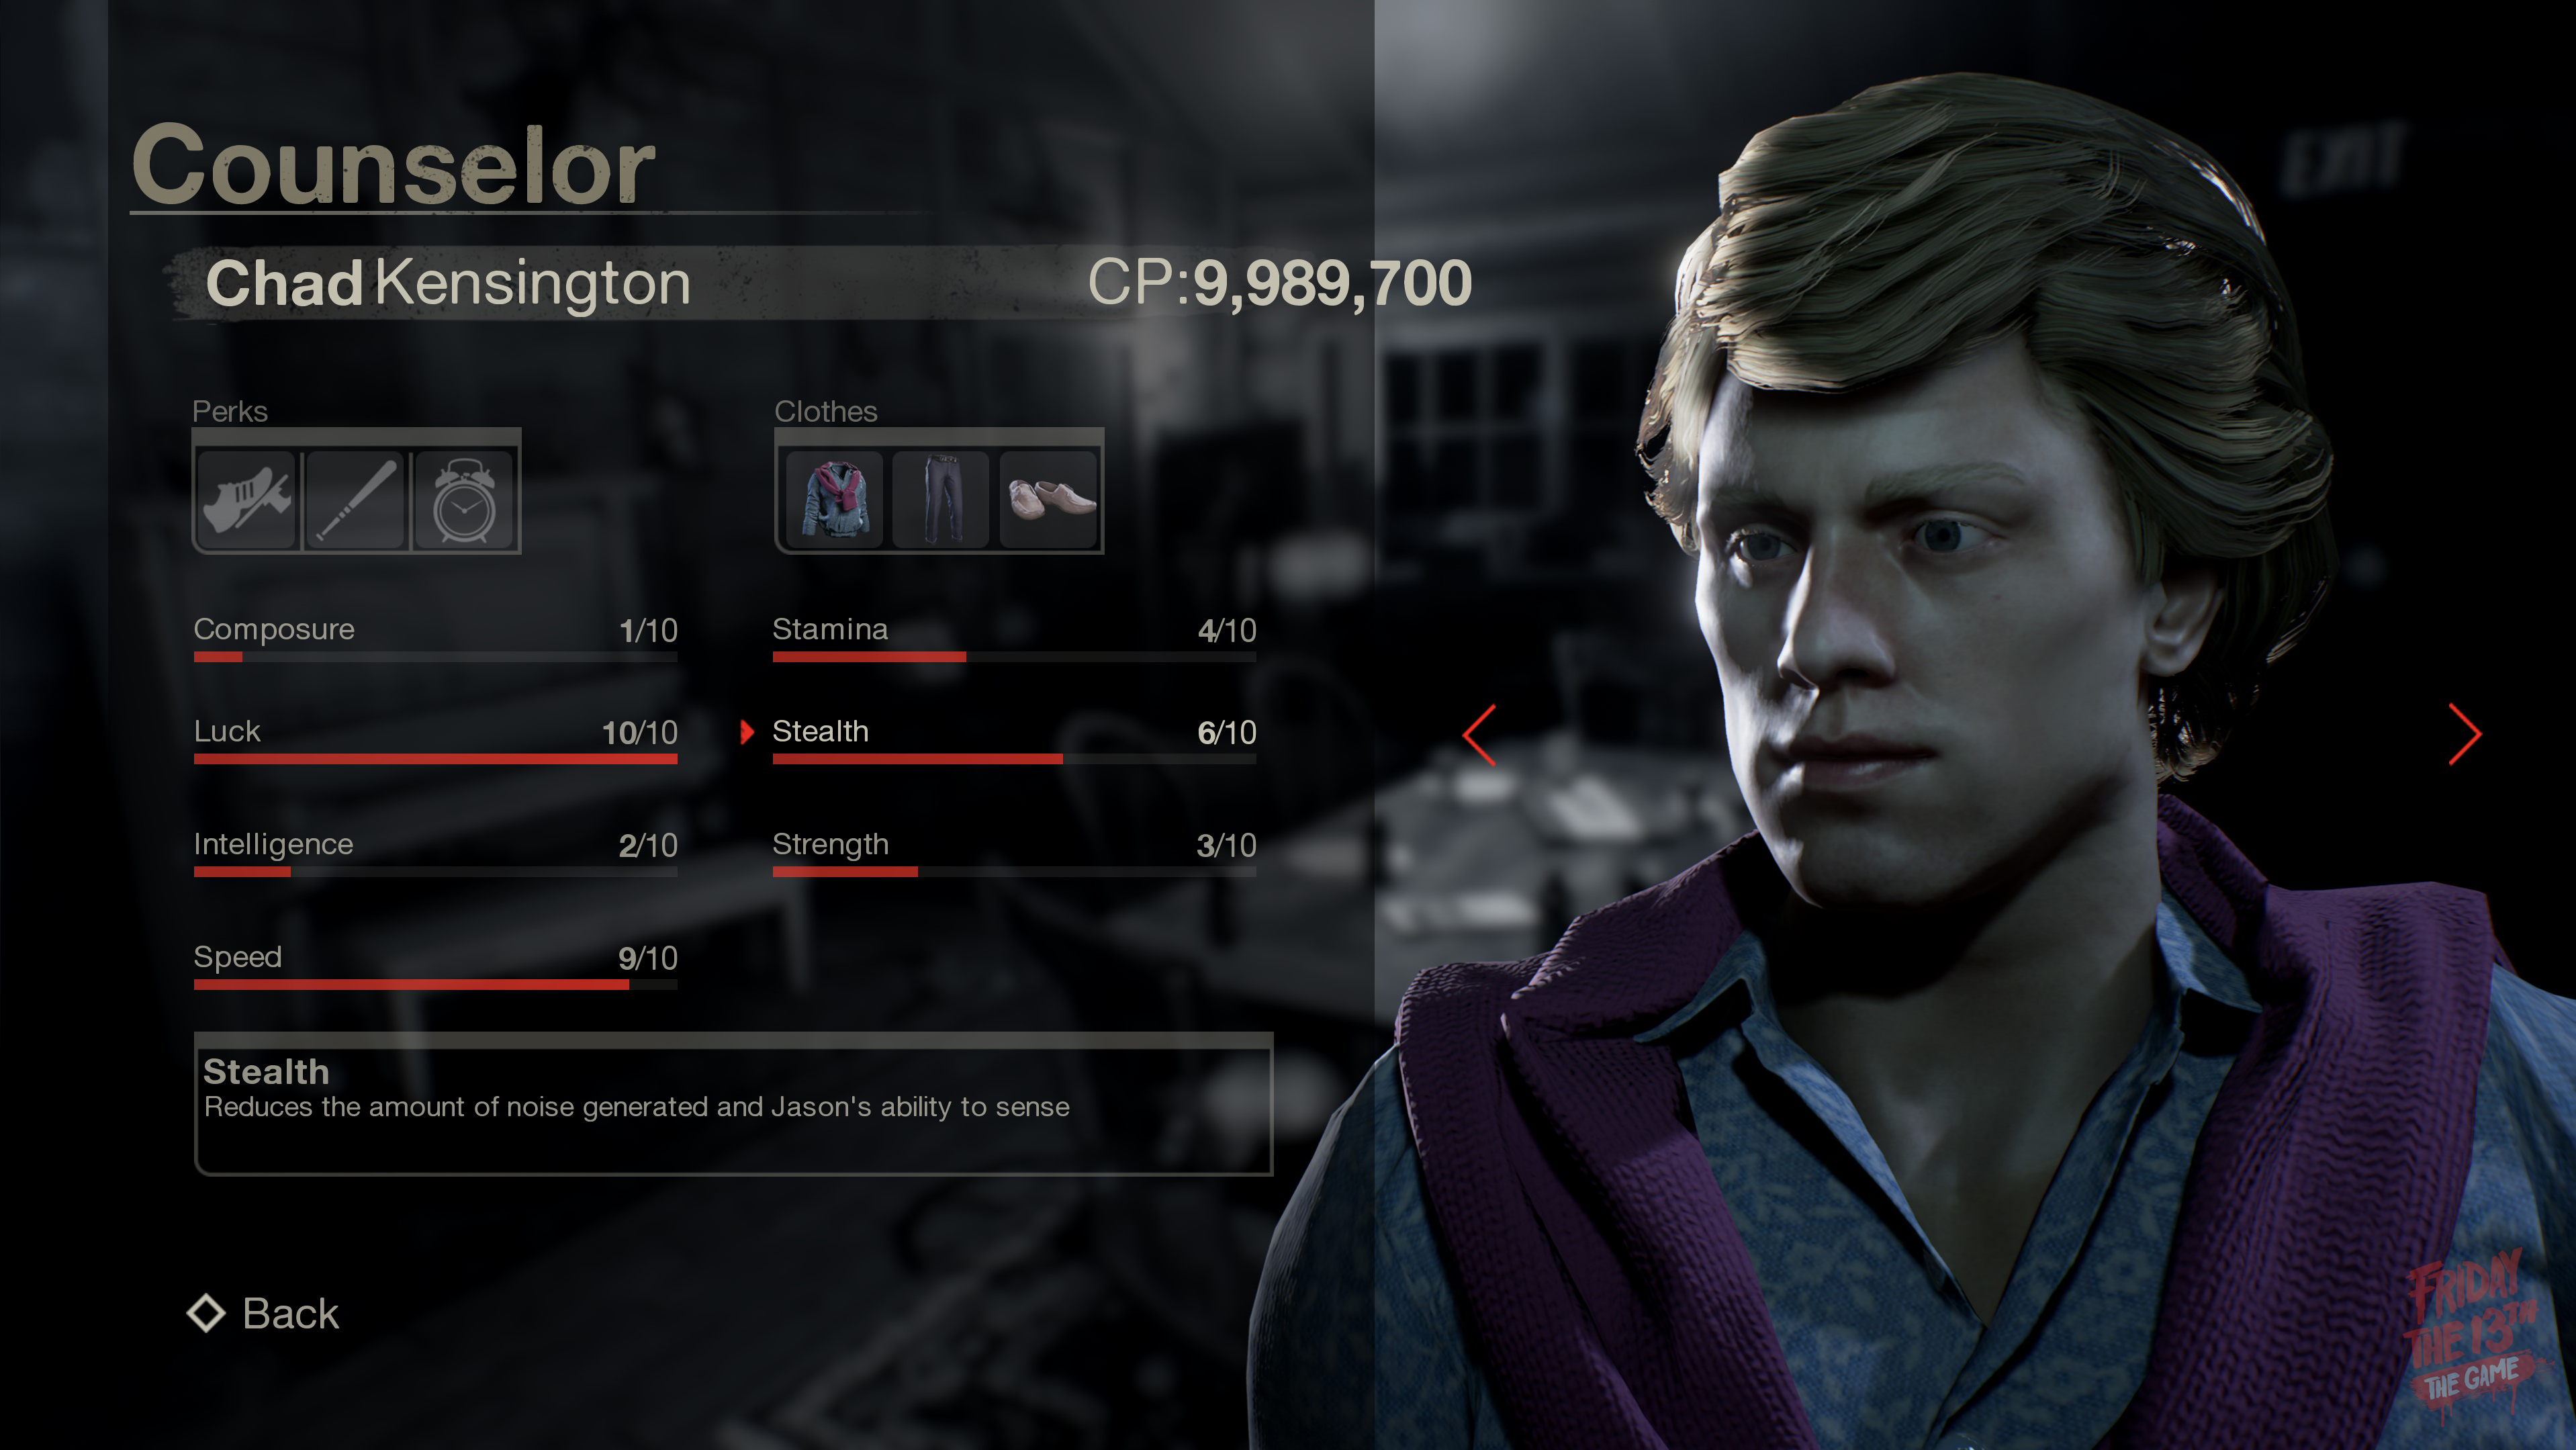 Chad from Friday the 13th: The game